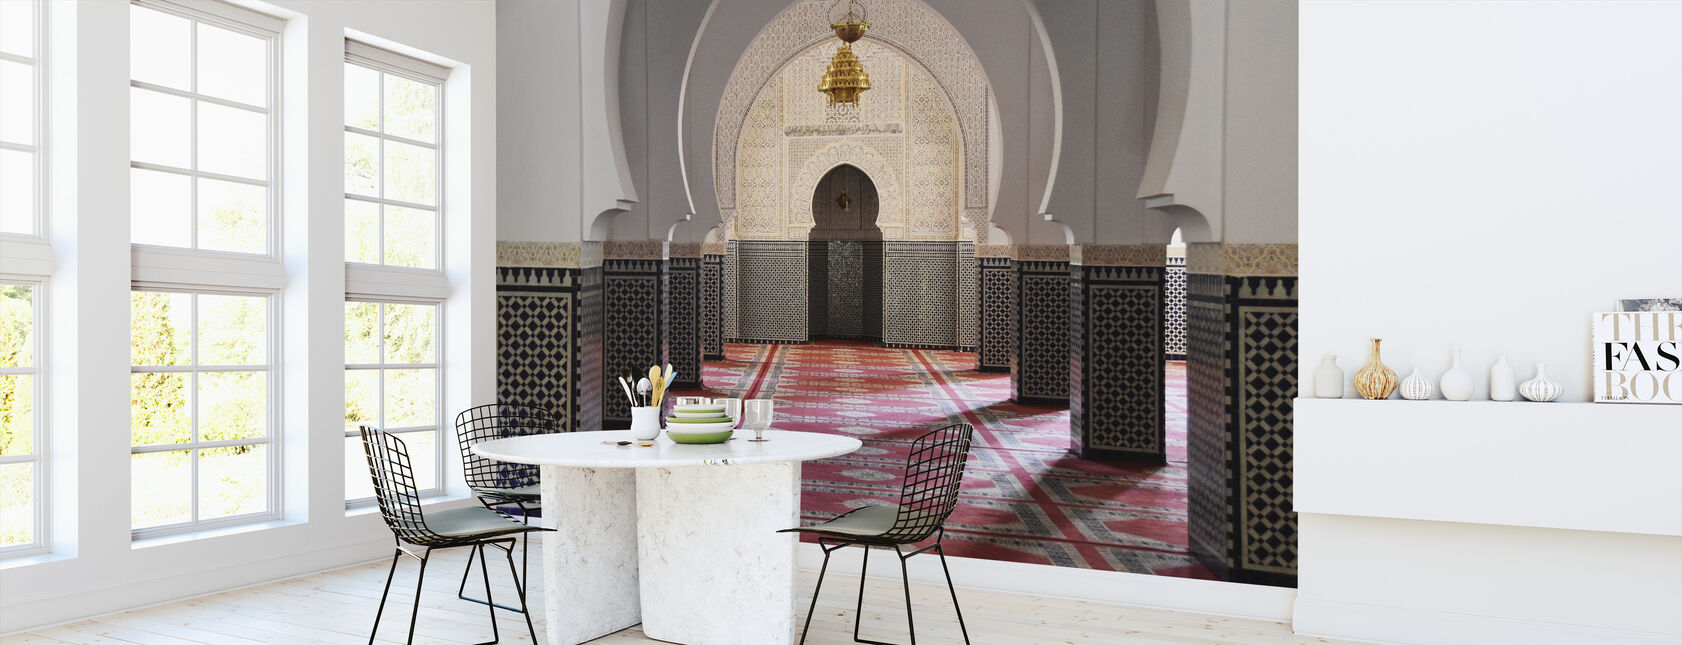 Berber Mosaic Mosque - Wallpaper - Kitchen